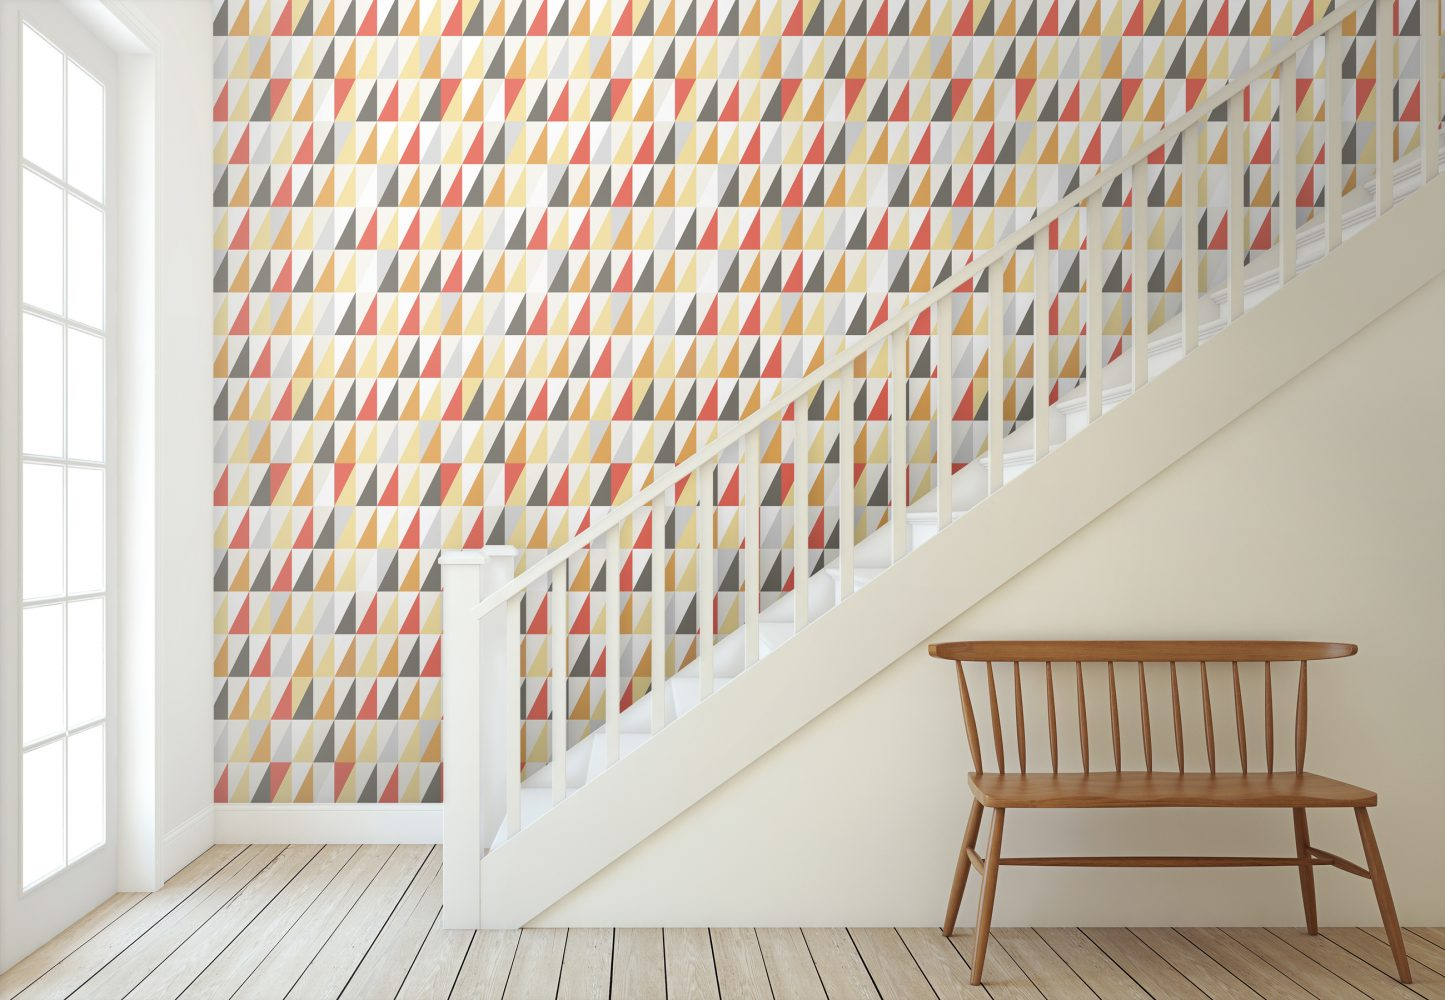 Geometric triangle wallpaper with jester colours, retro orange, red, mustard yellow, black and white.